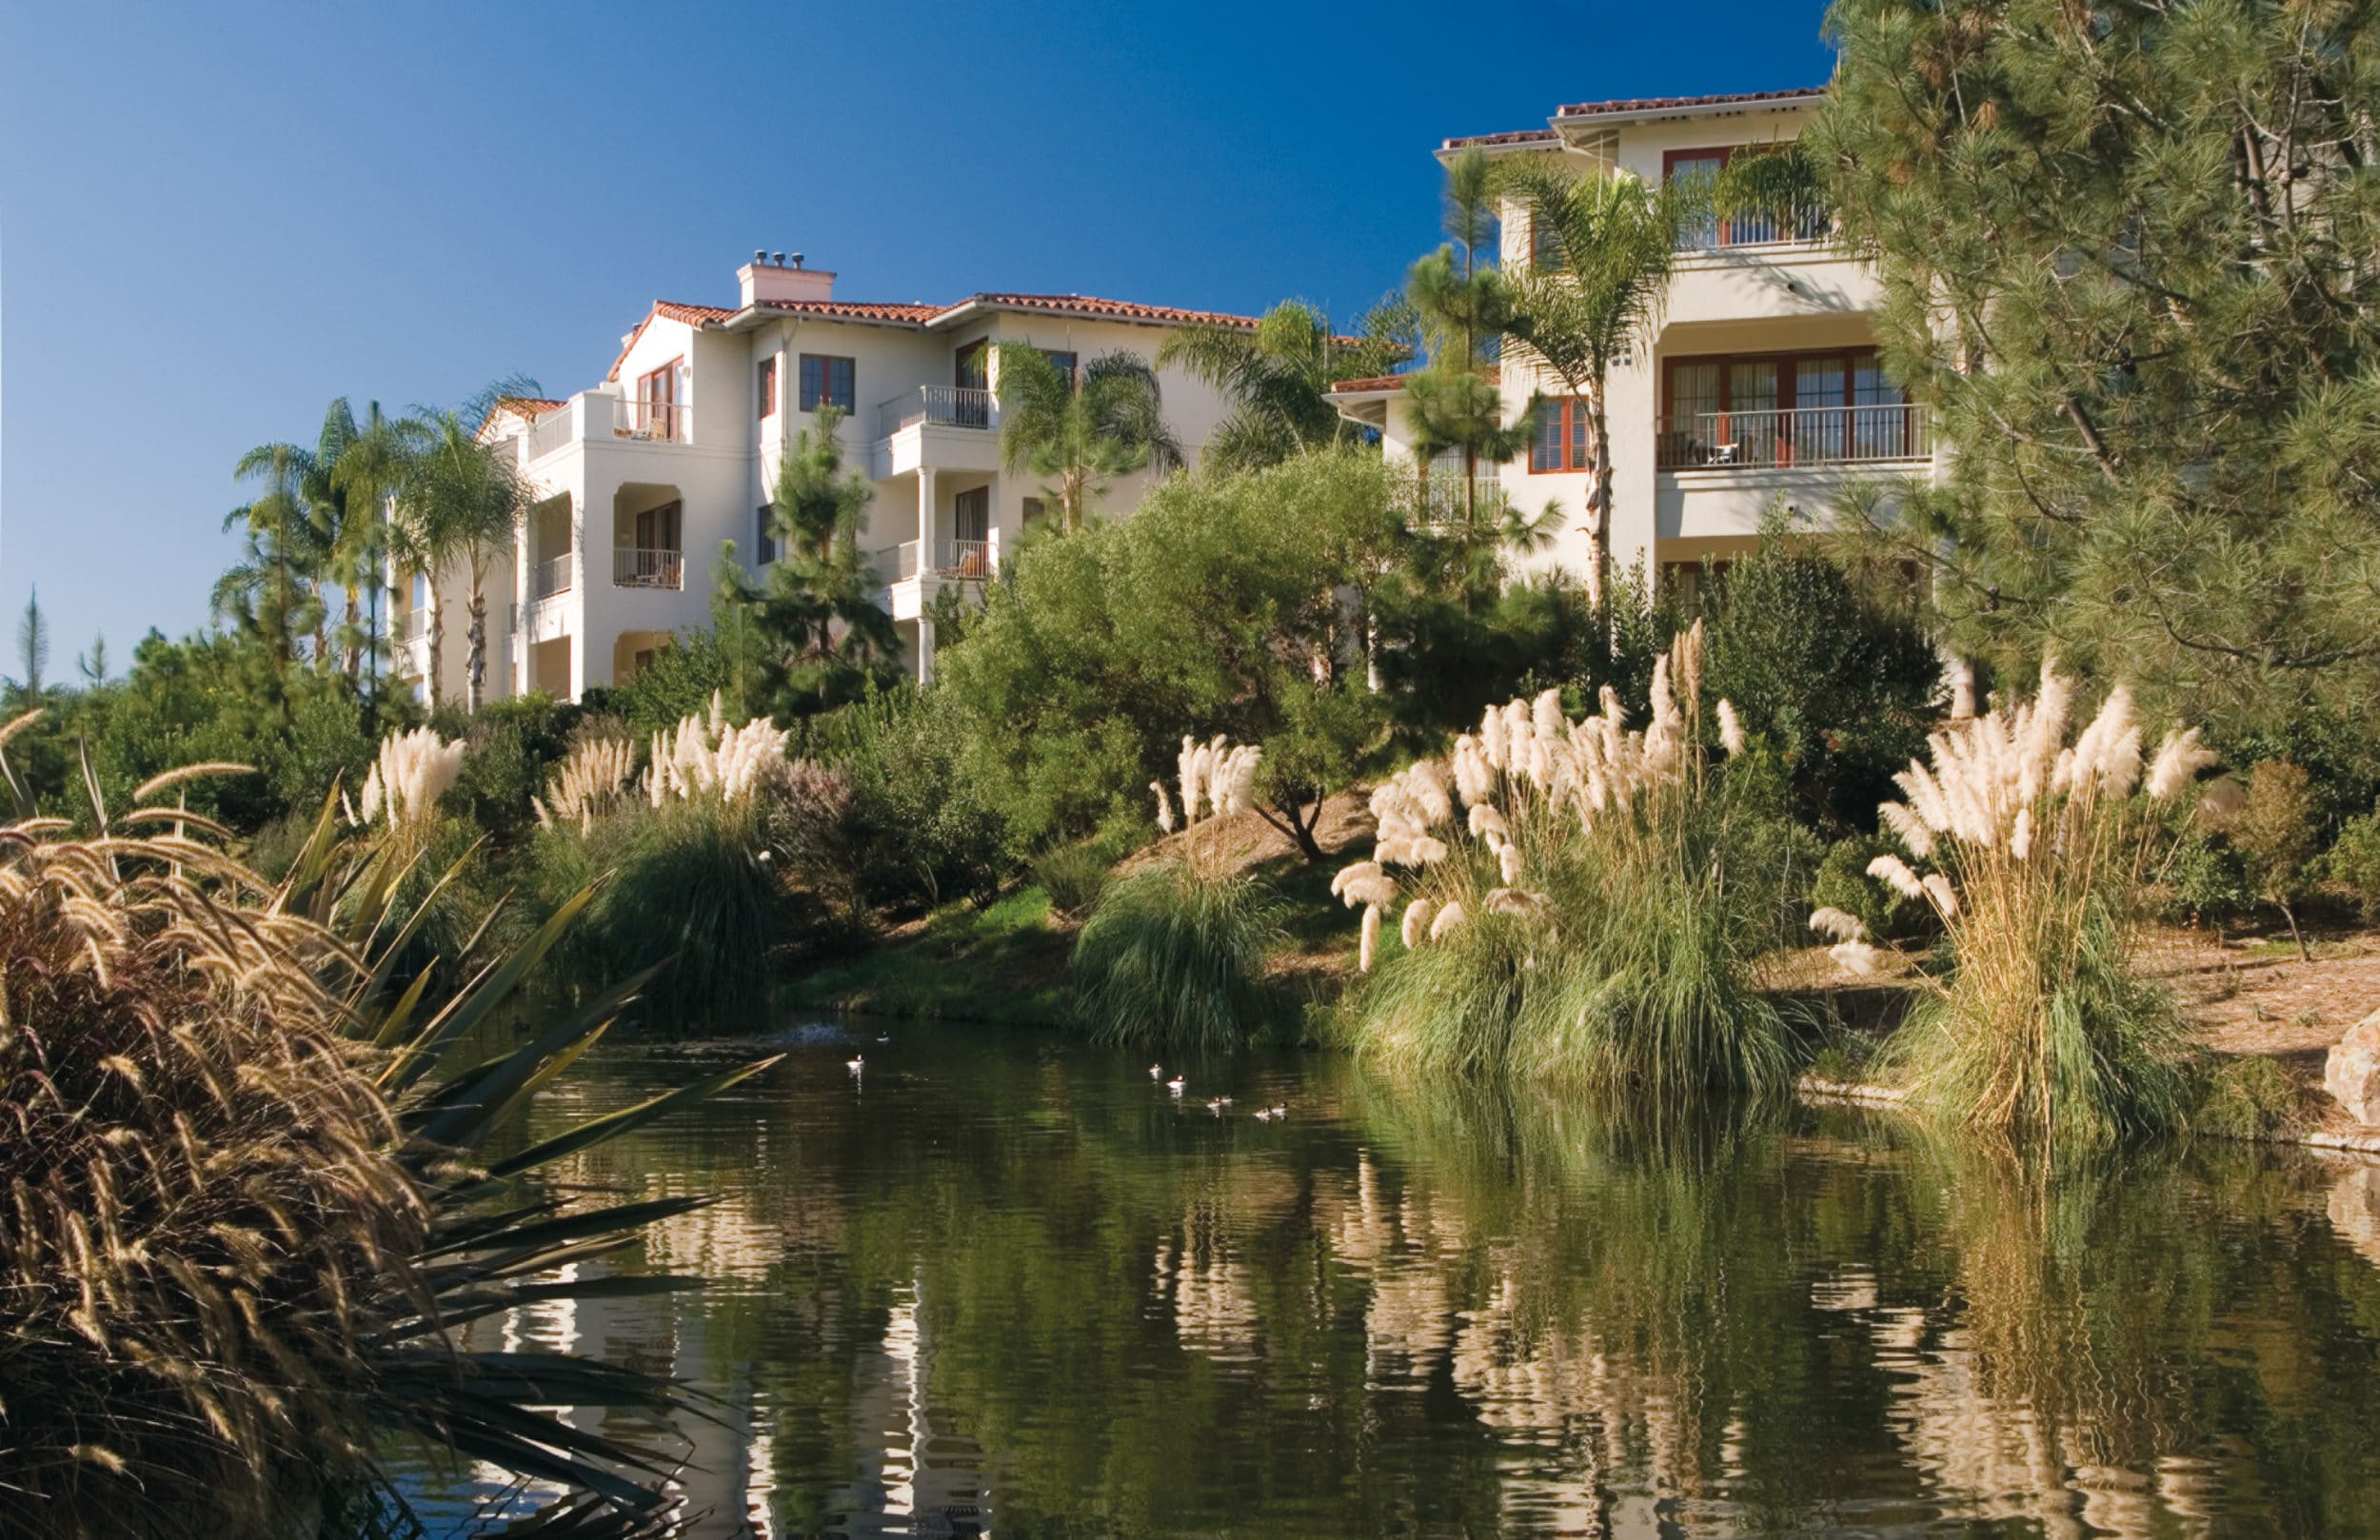 Best San Diego luxury hotels: Four Seasons Residence Club Aviara, North San Diego